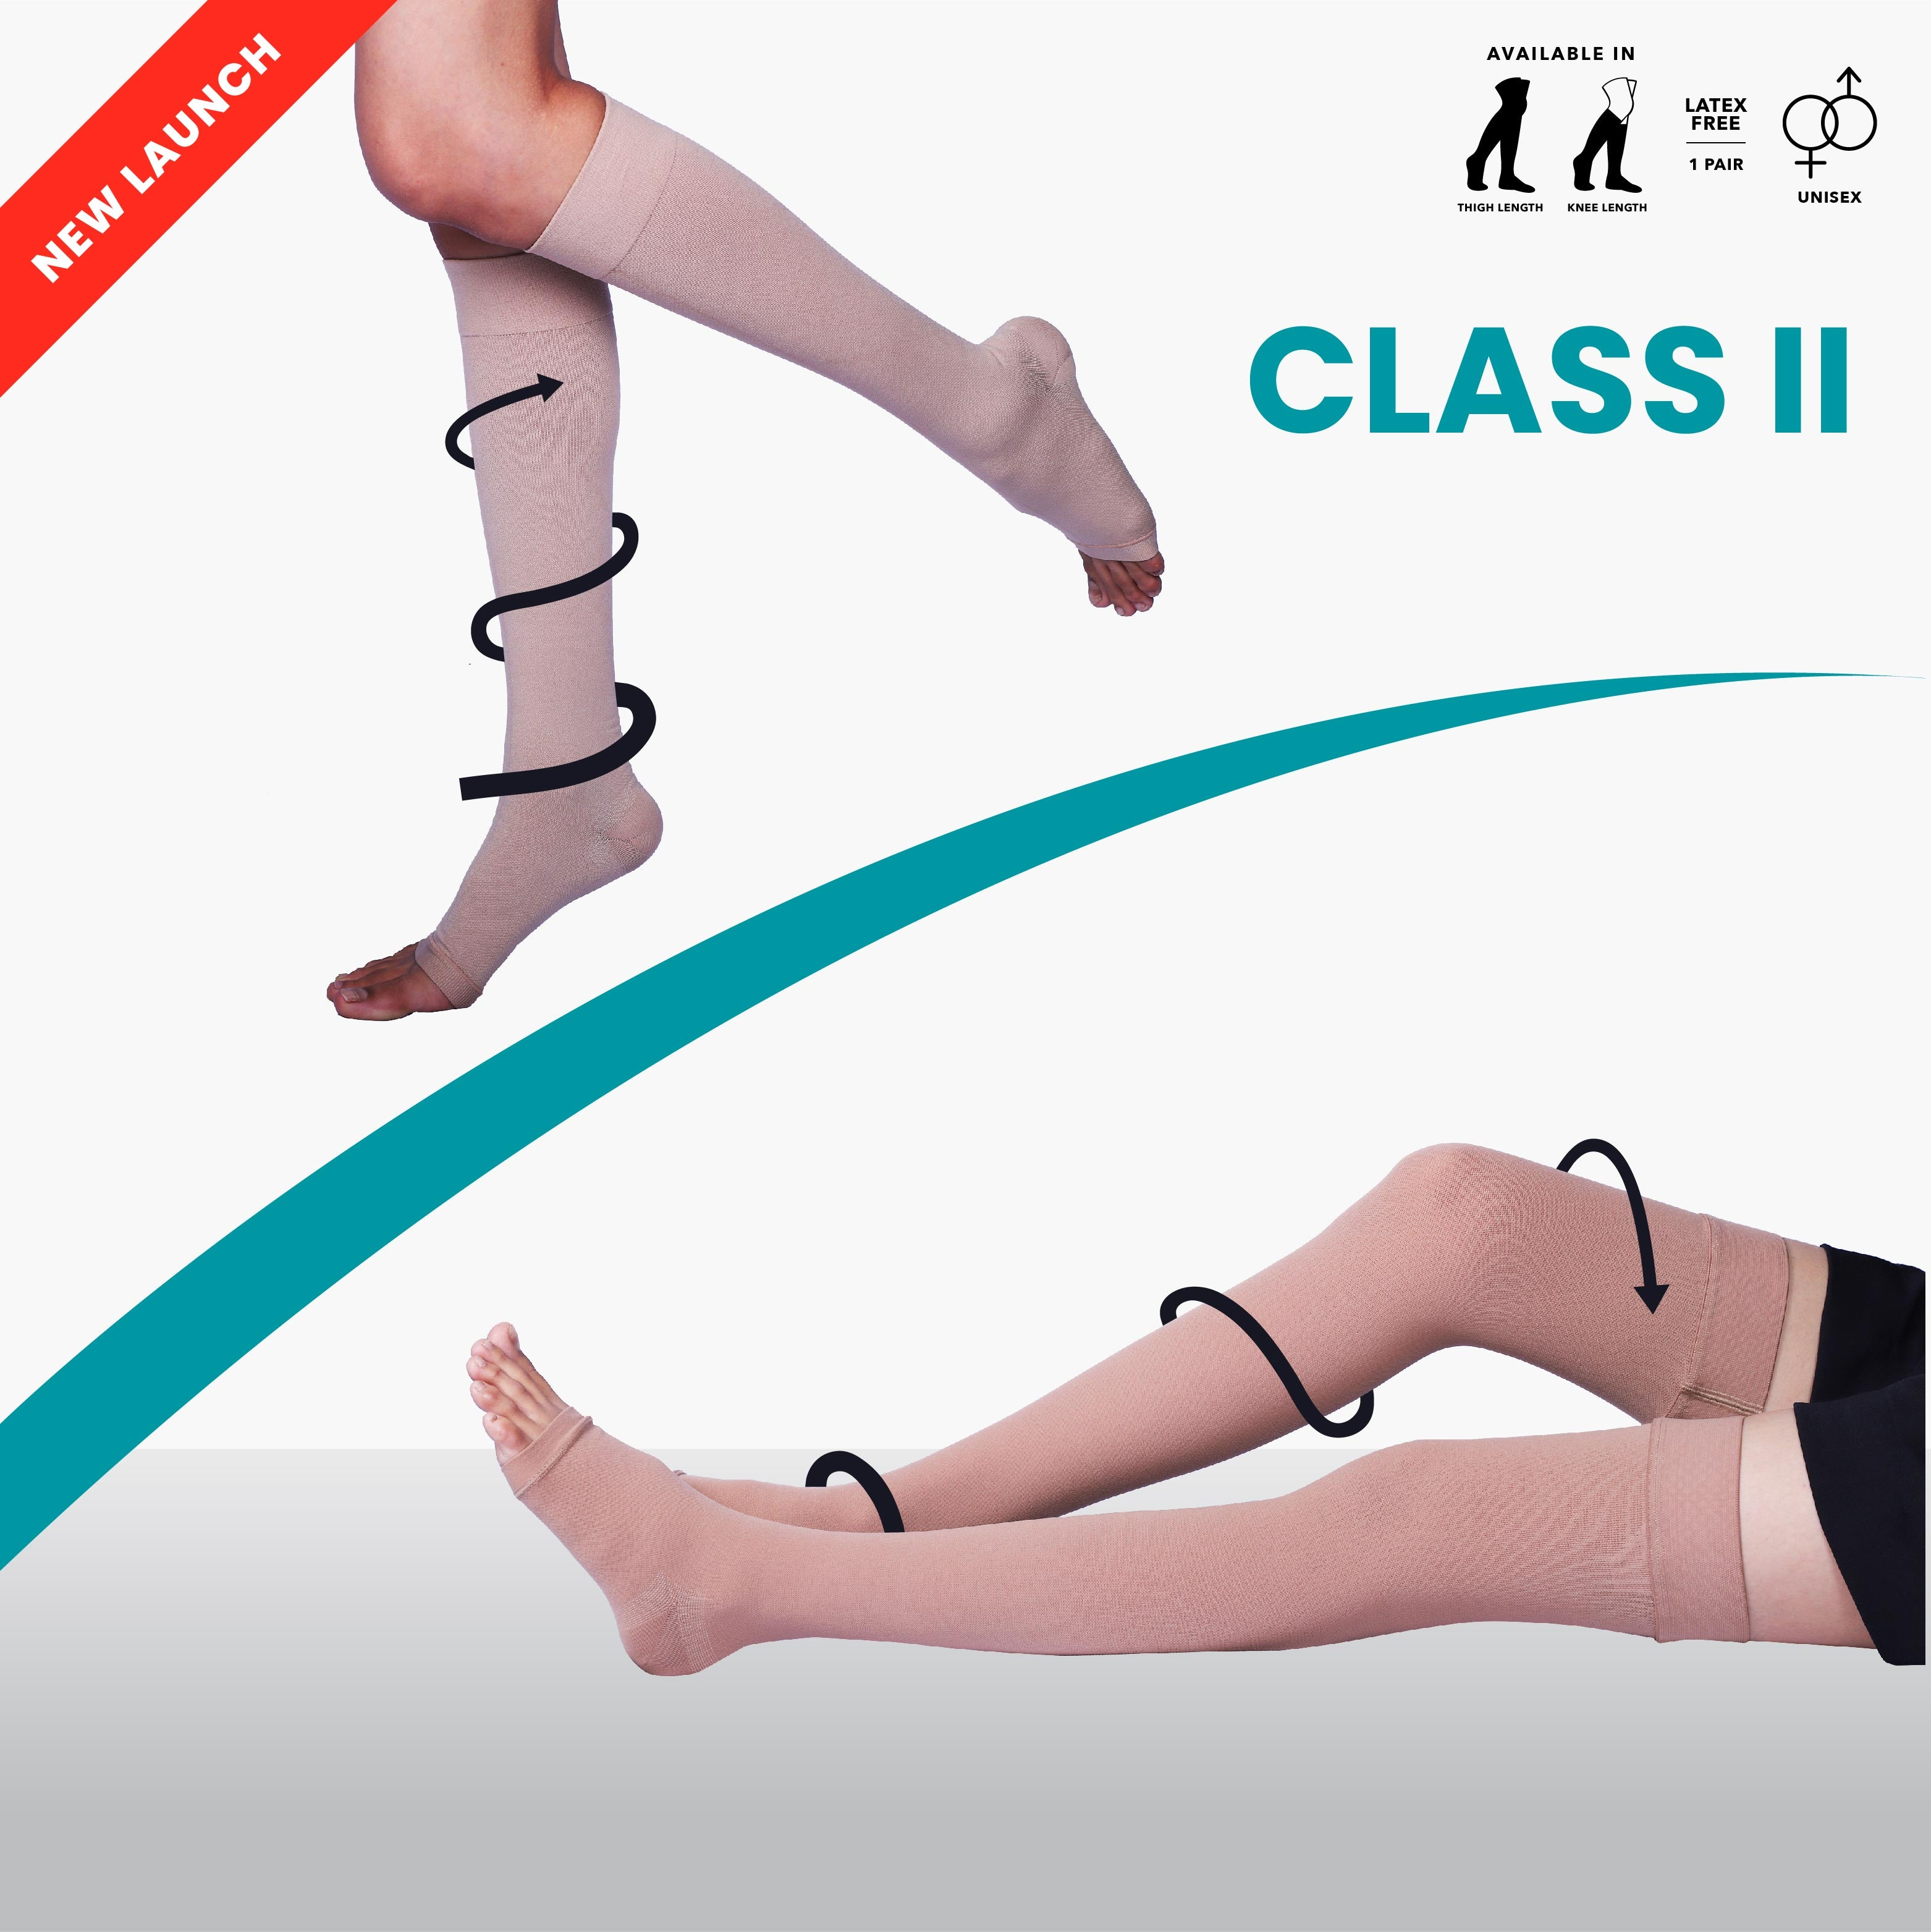 Class II- Premiere (Cotton) Compression Stockings by Sorgen®